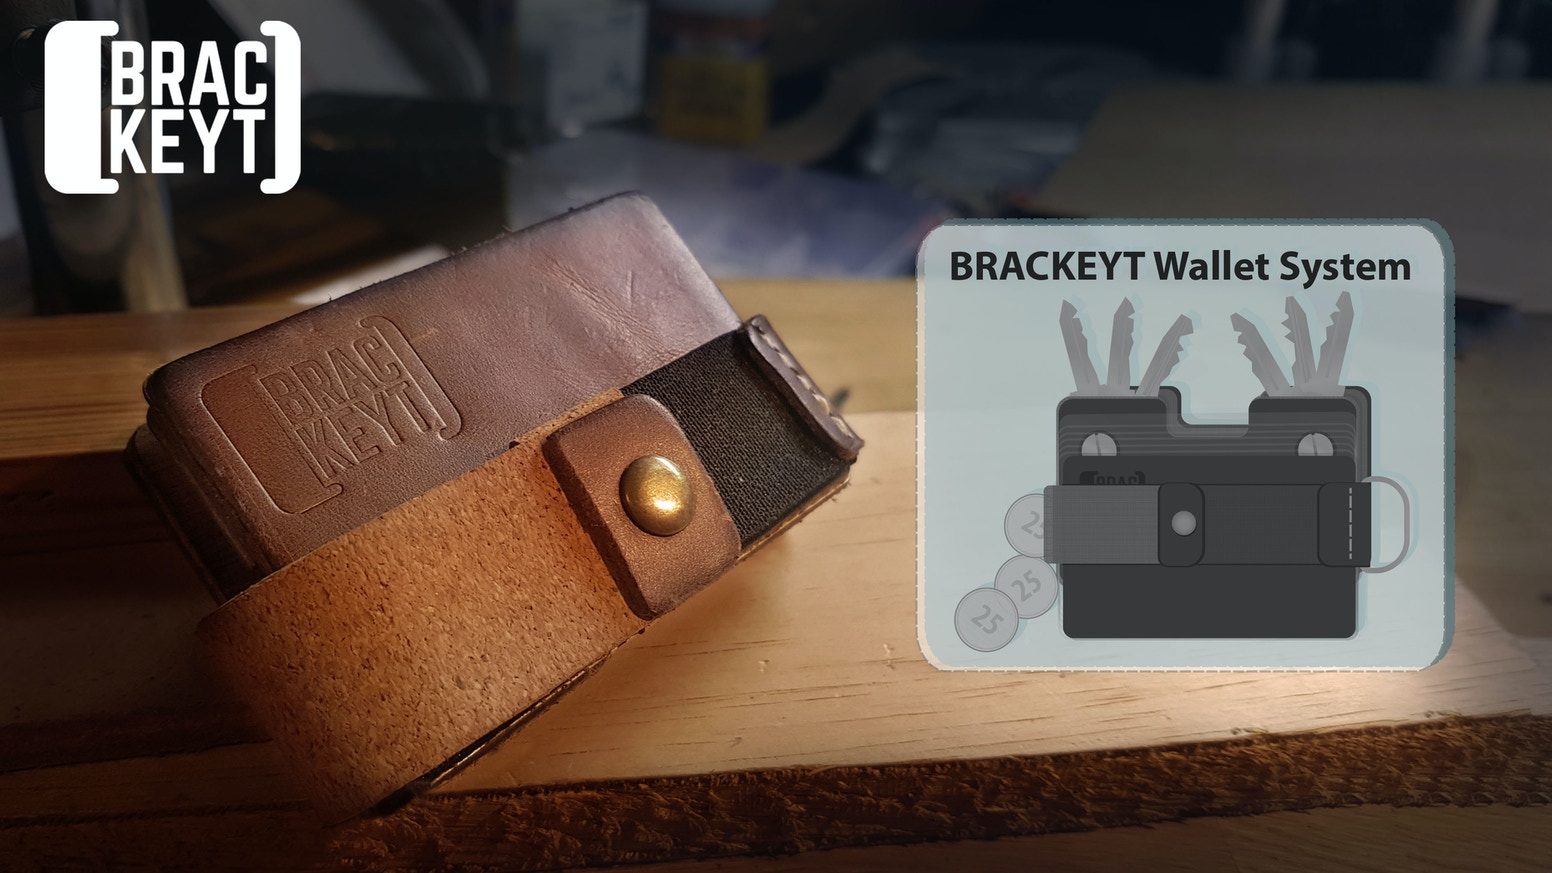 BRACKEYT. The Artisanal EDC wallet re-imagined 